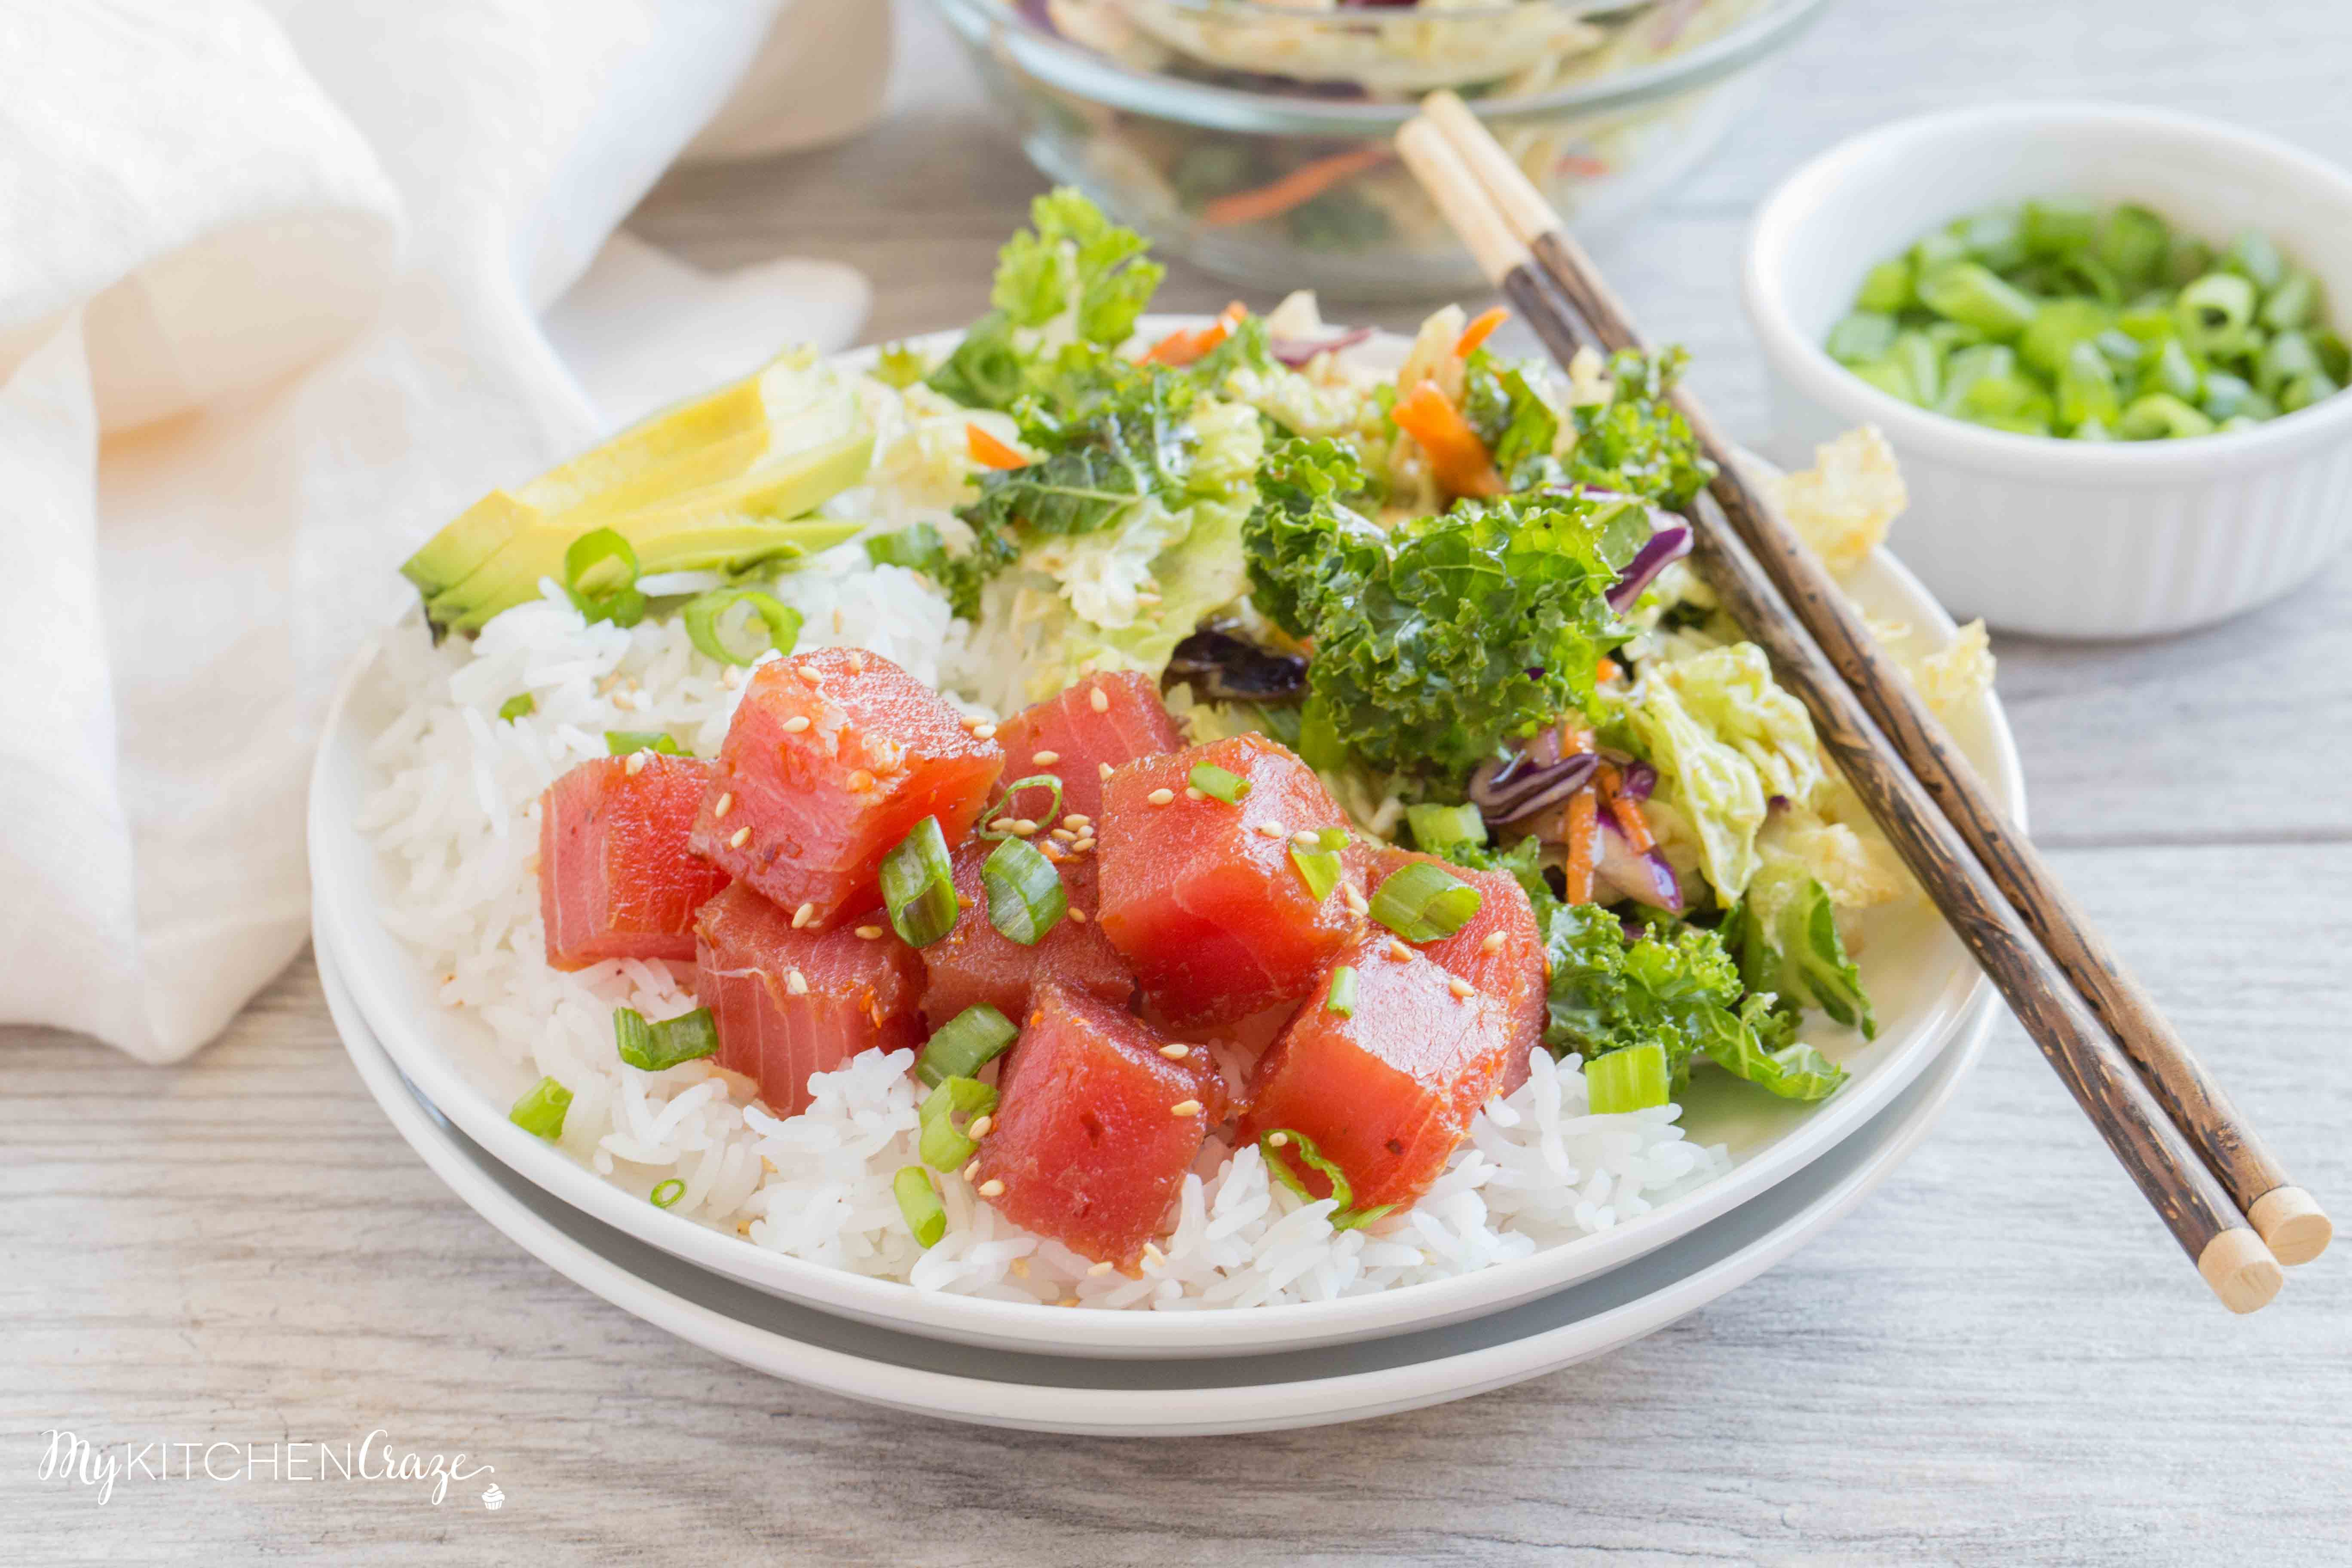 Ahi Tuna Poke Bowls ~ mykitchencraze.com ~ Ahi Tuna Poke Bowls are refreshing and a delicious recipe This easy recipe is great for parties or to enjoy as a family meal.